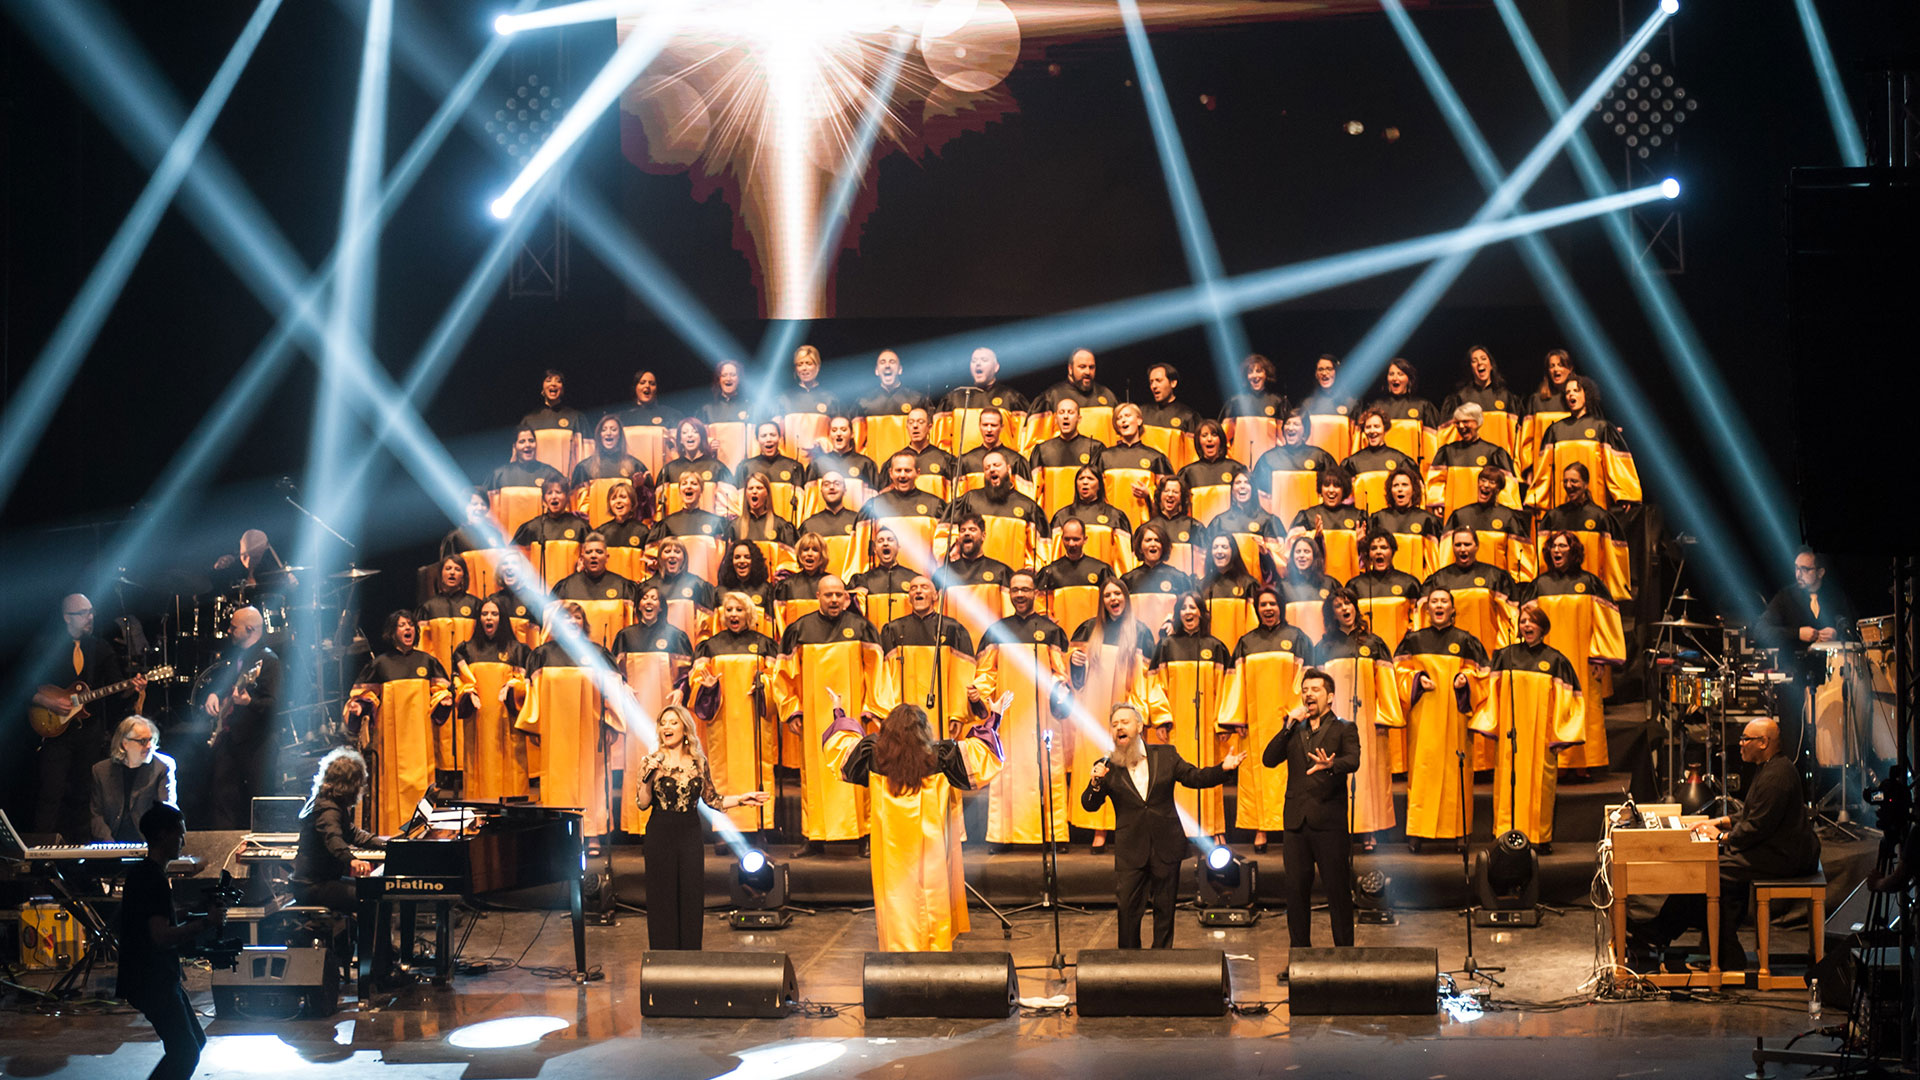 Sunshine_Gospel_Choir_Italia_018.jpg